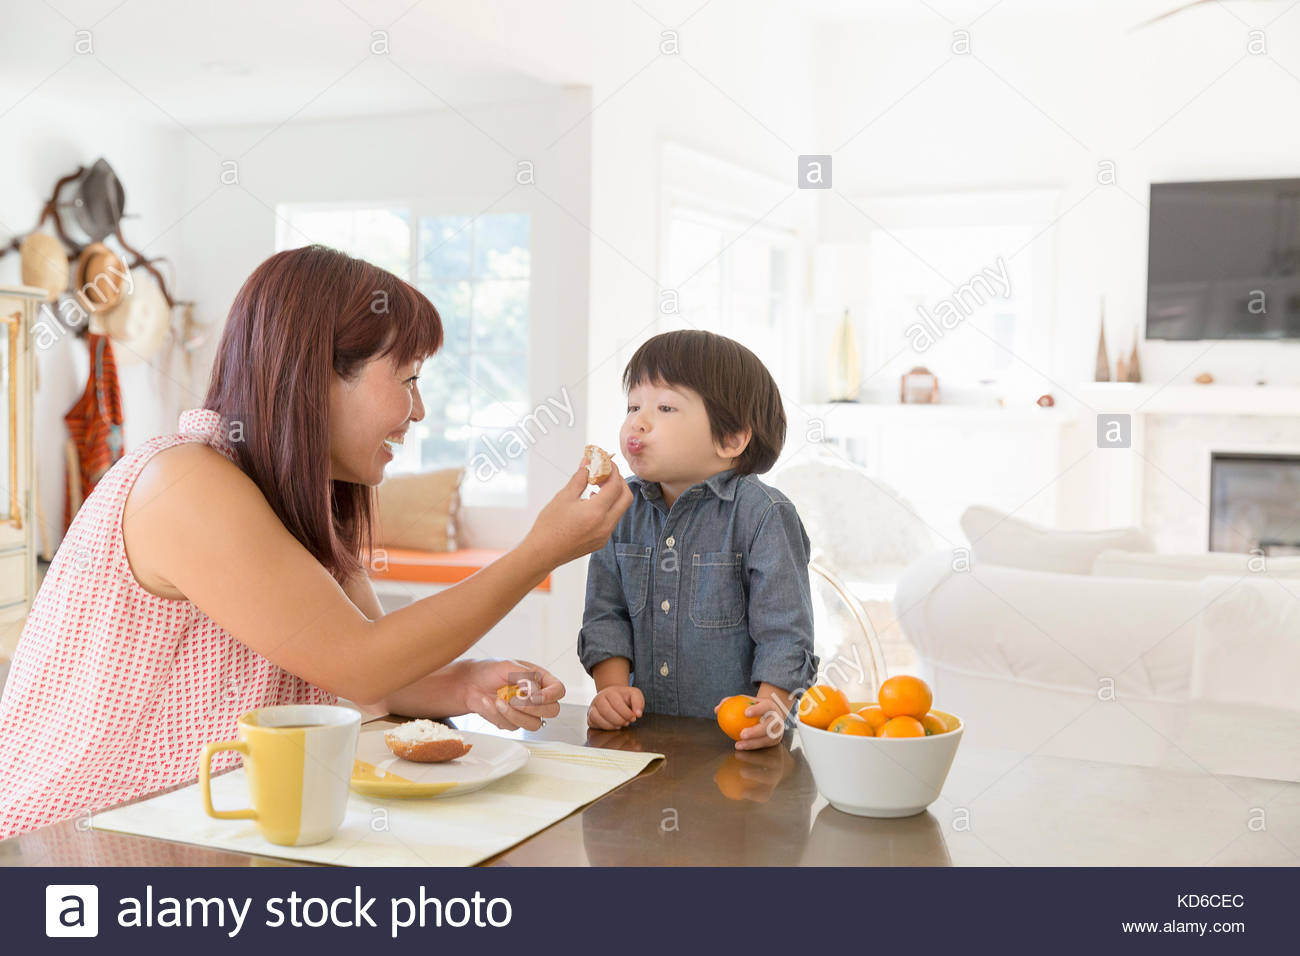 Mother feeding son at dining table - Stock Image